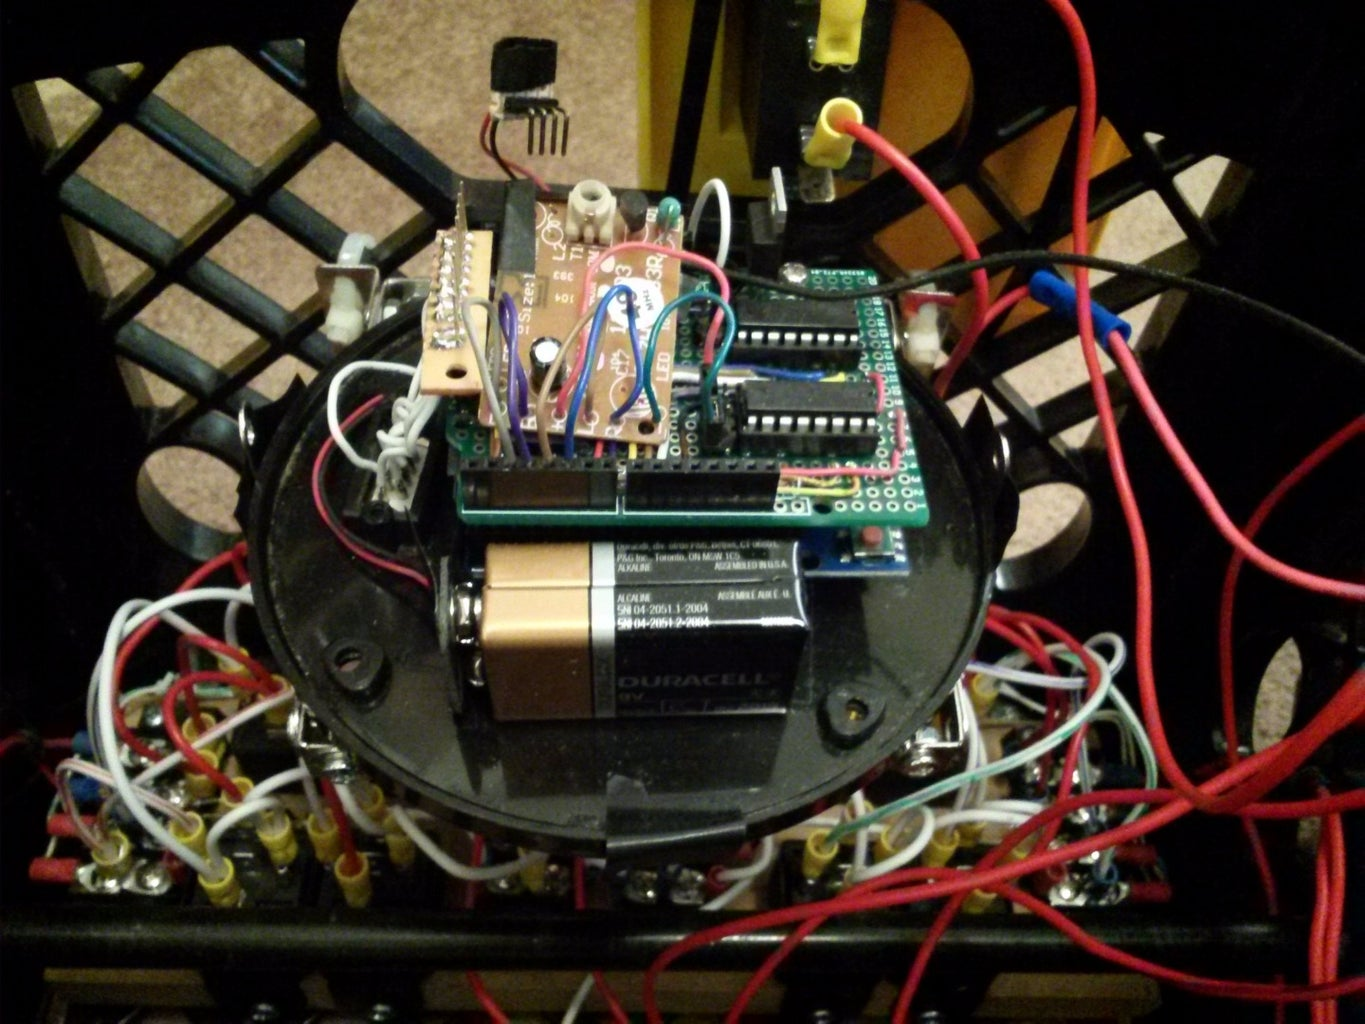 Installing the Arduino Control Boards